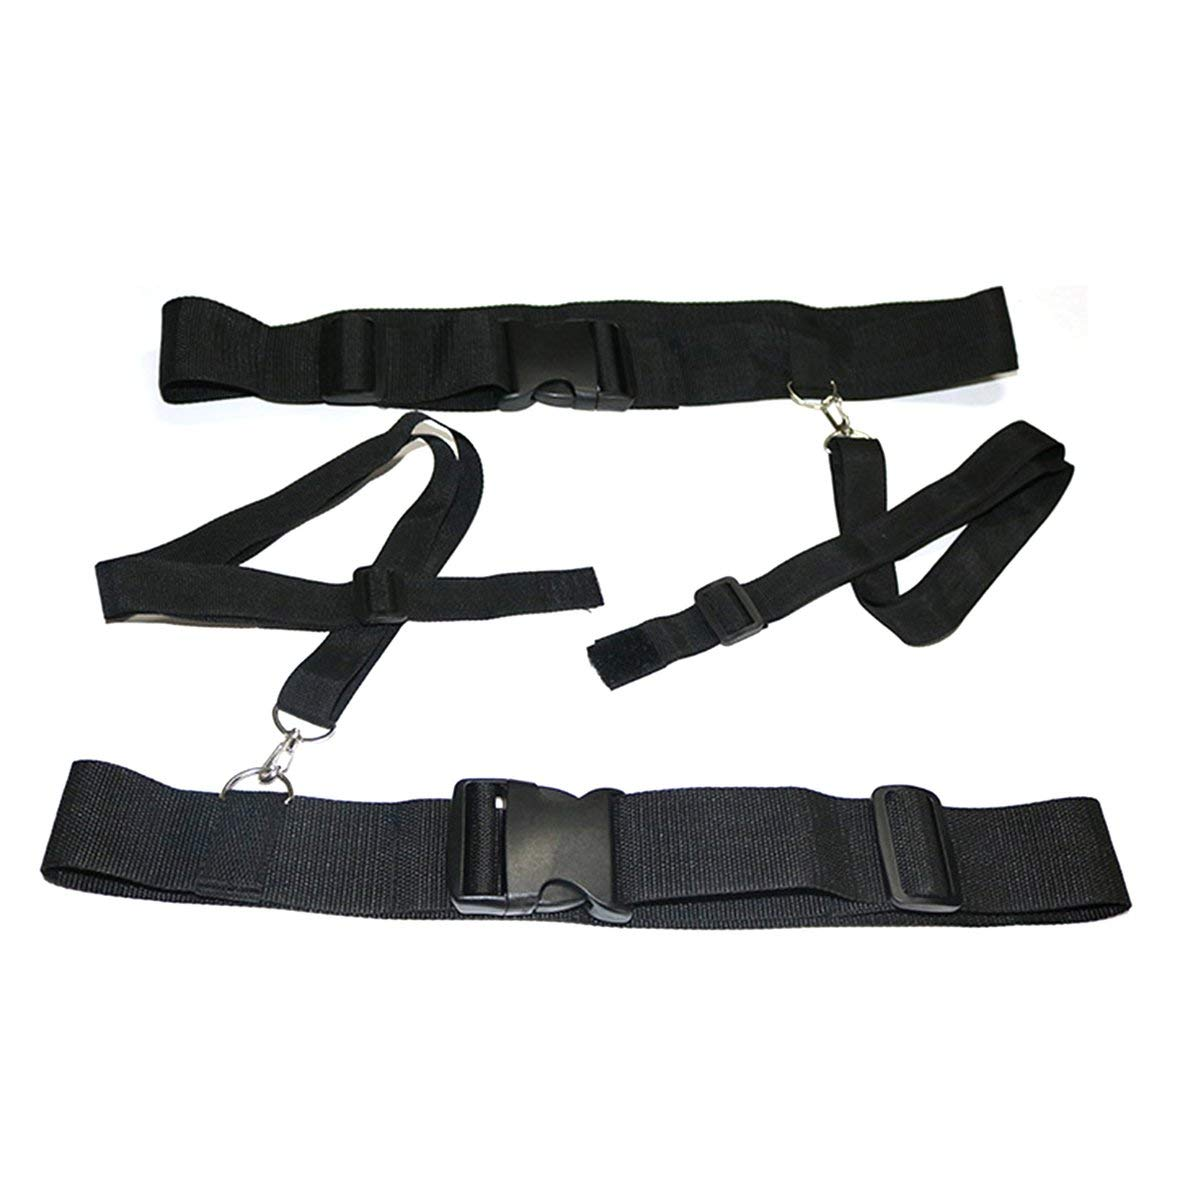 Tivolii Sports Training Aids Childrens Speed Reaction Belt Agility Training Equipment